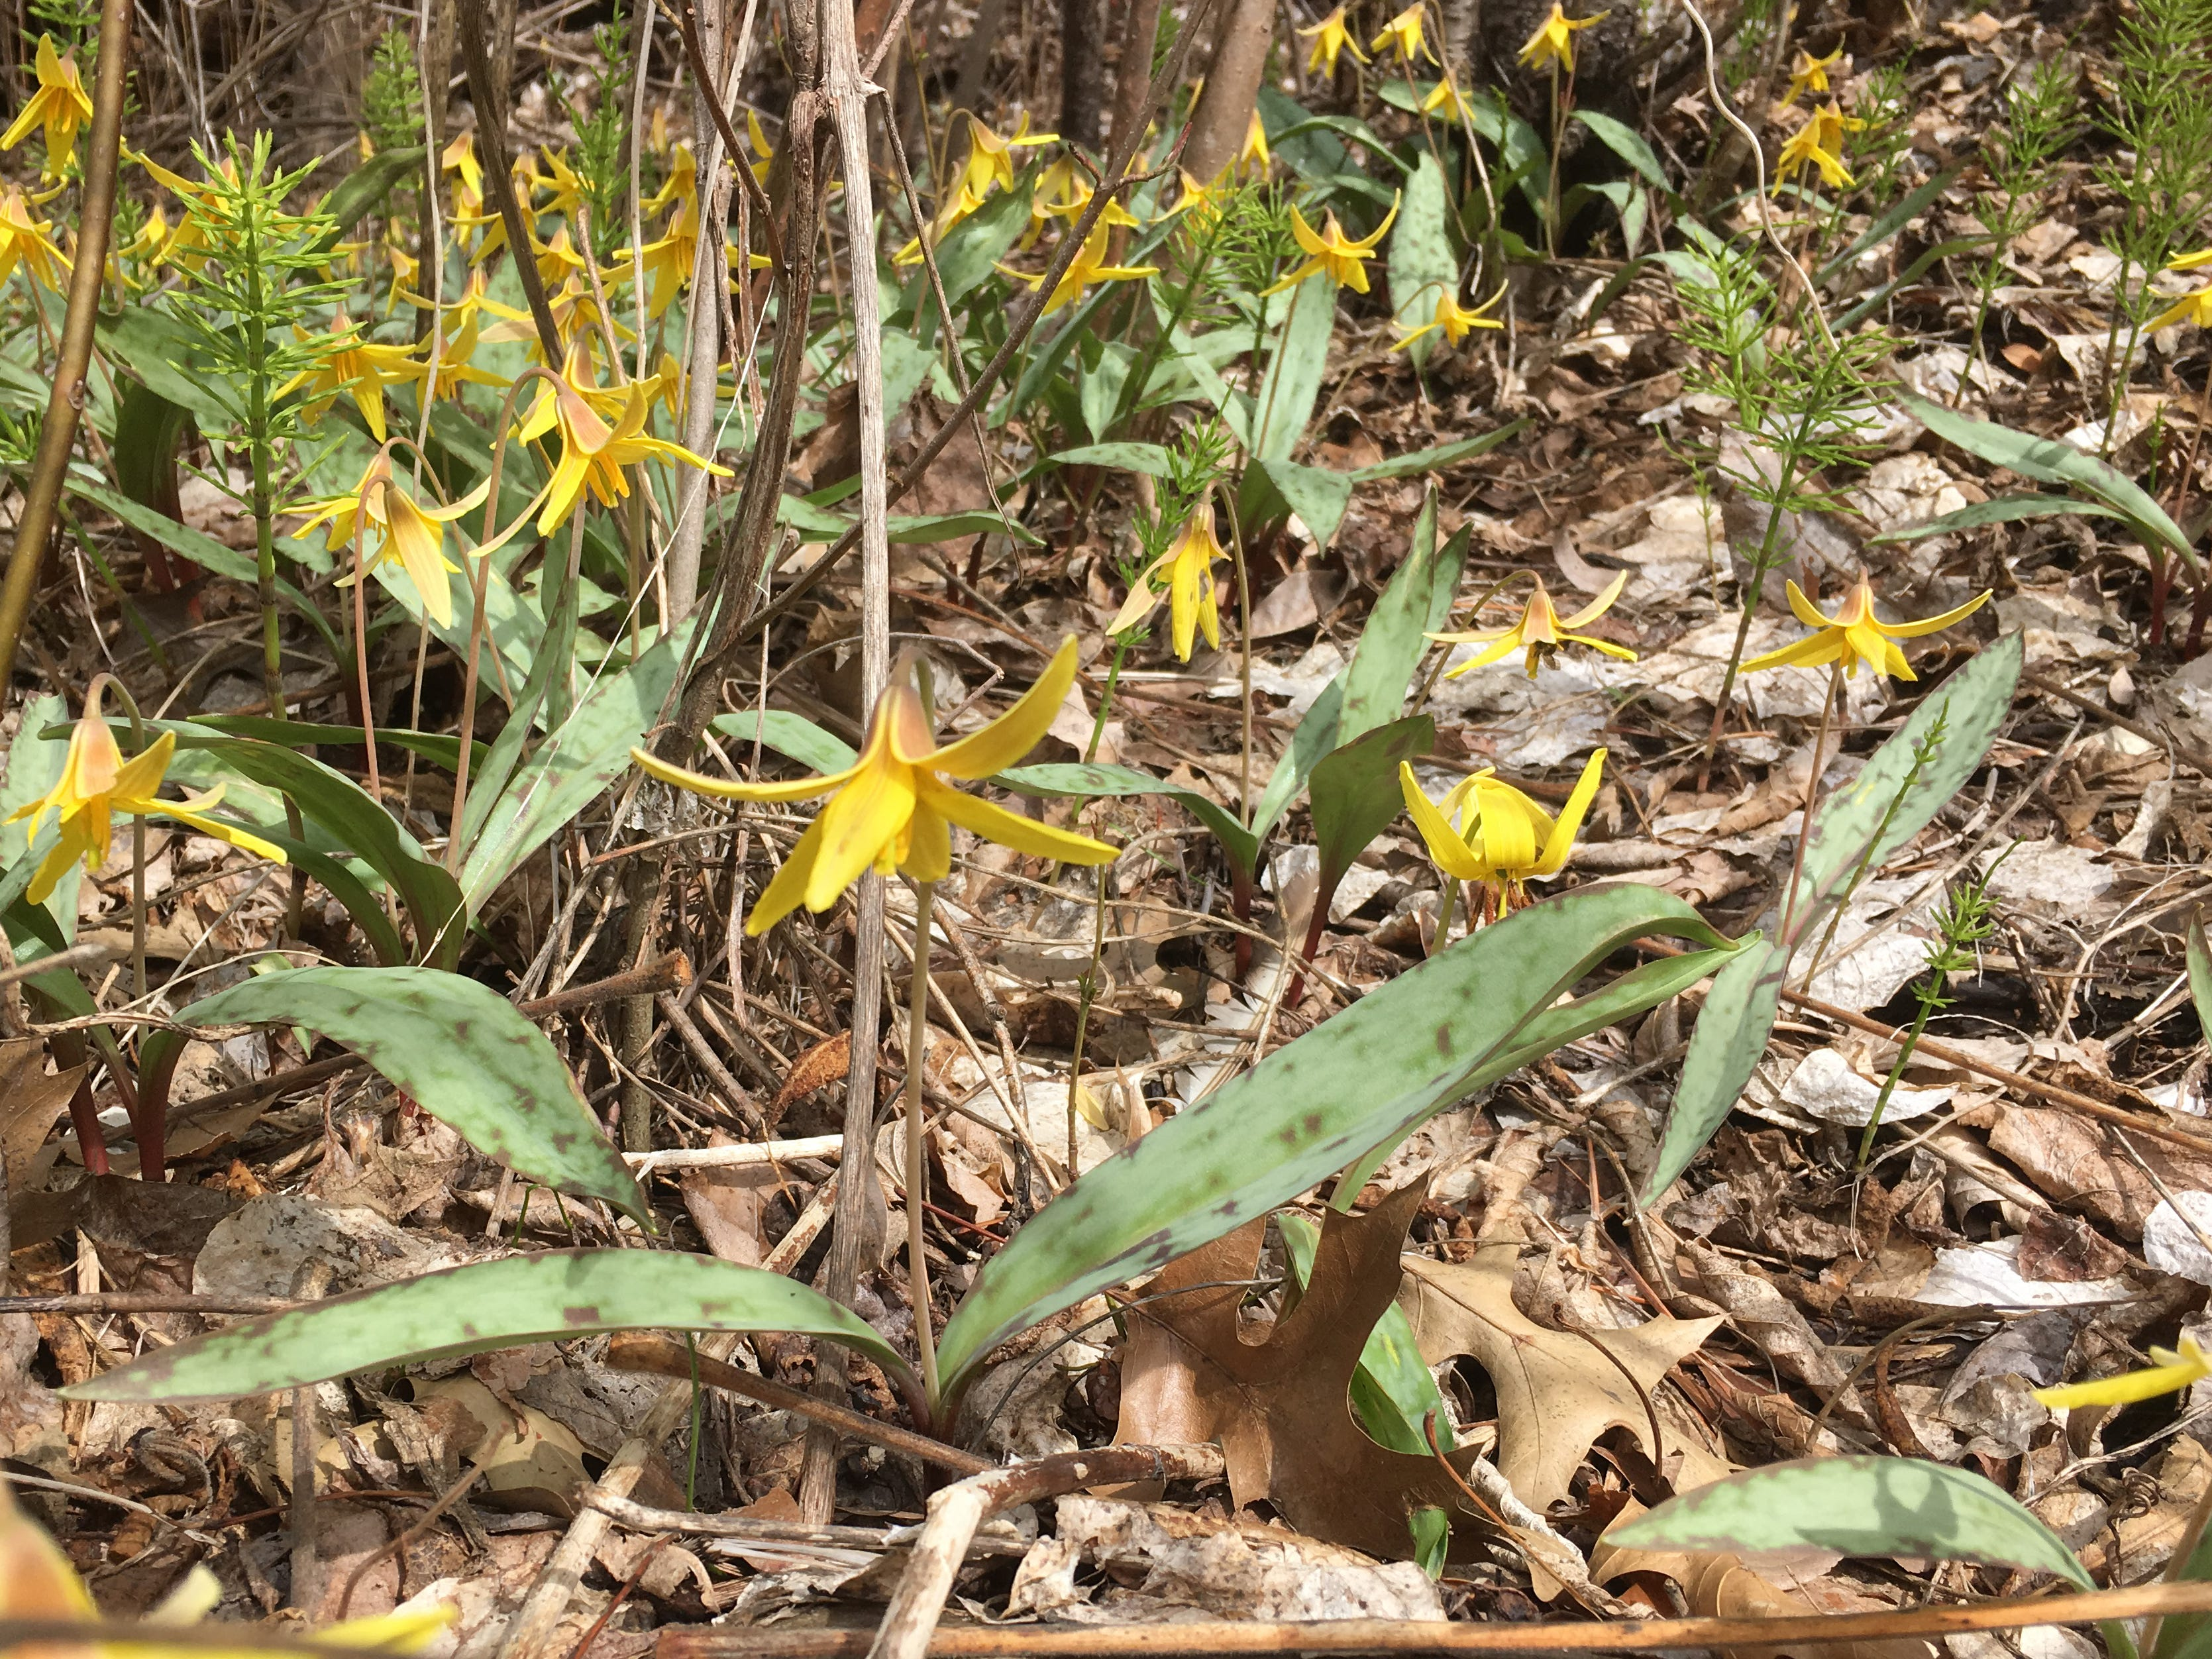 Trout lilies, marked with characteristic mottled leaf-coloring, thrive along Flynn Avenue near Burlington's Oakledge Park on Sunday, April 5, 2019.